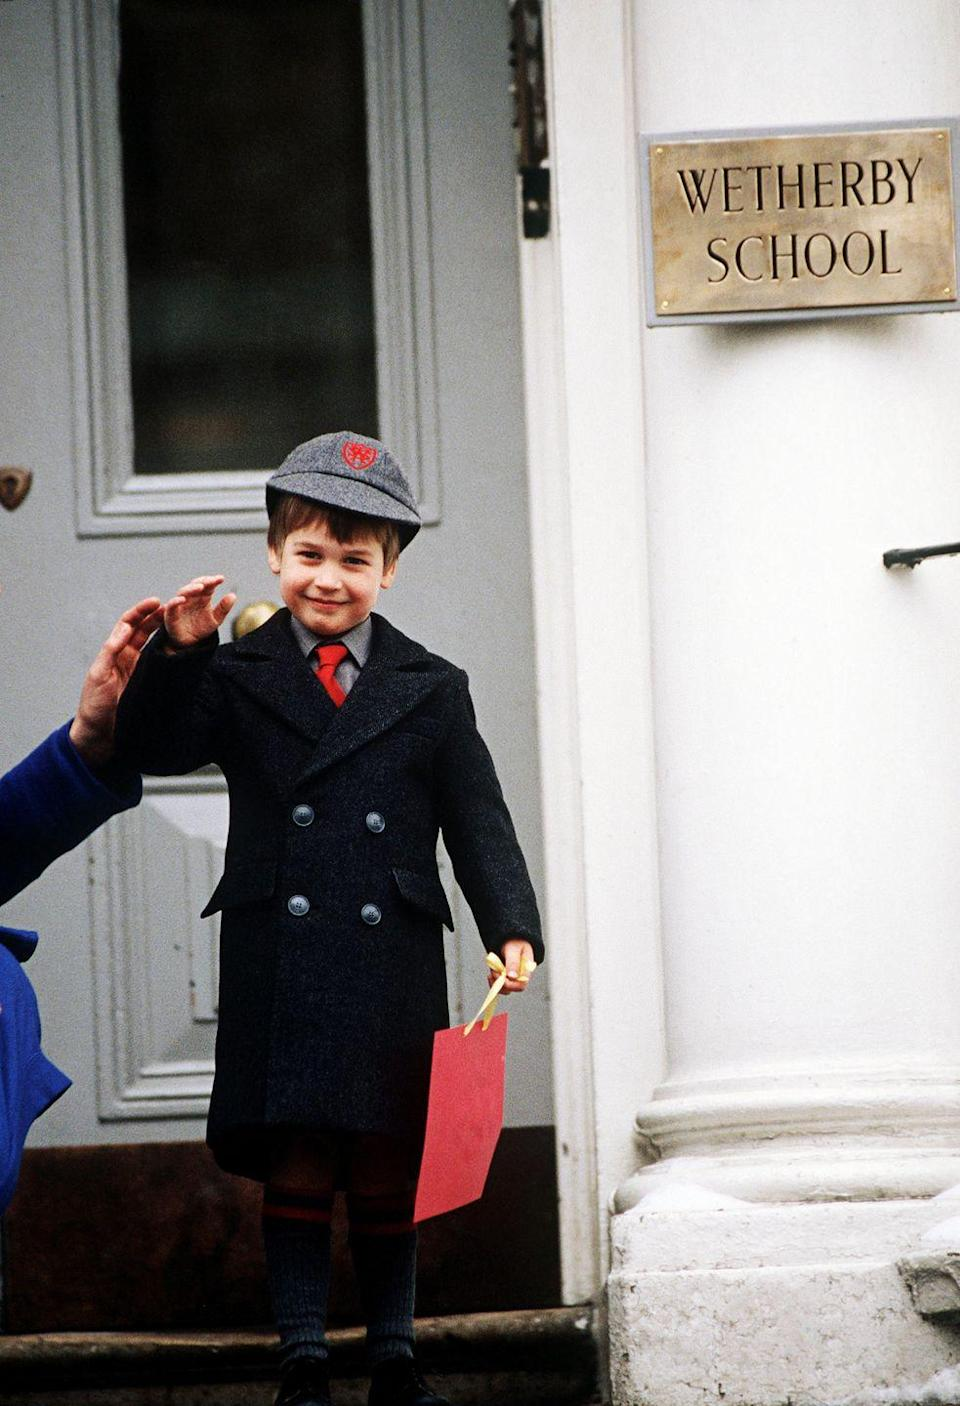 <p>Prince William poses outside the Wetherby School on his first day, providing incontrovertible proof that nobody does school uniforms like the English.</p>